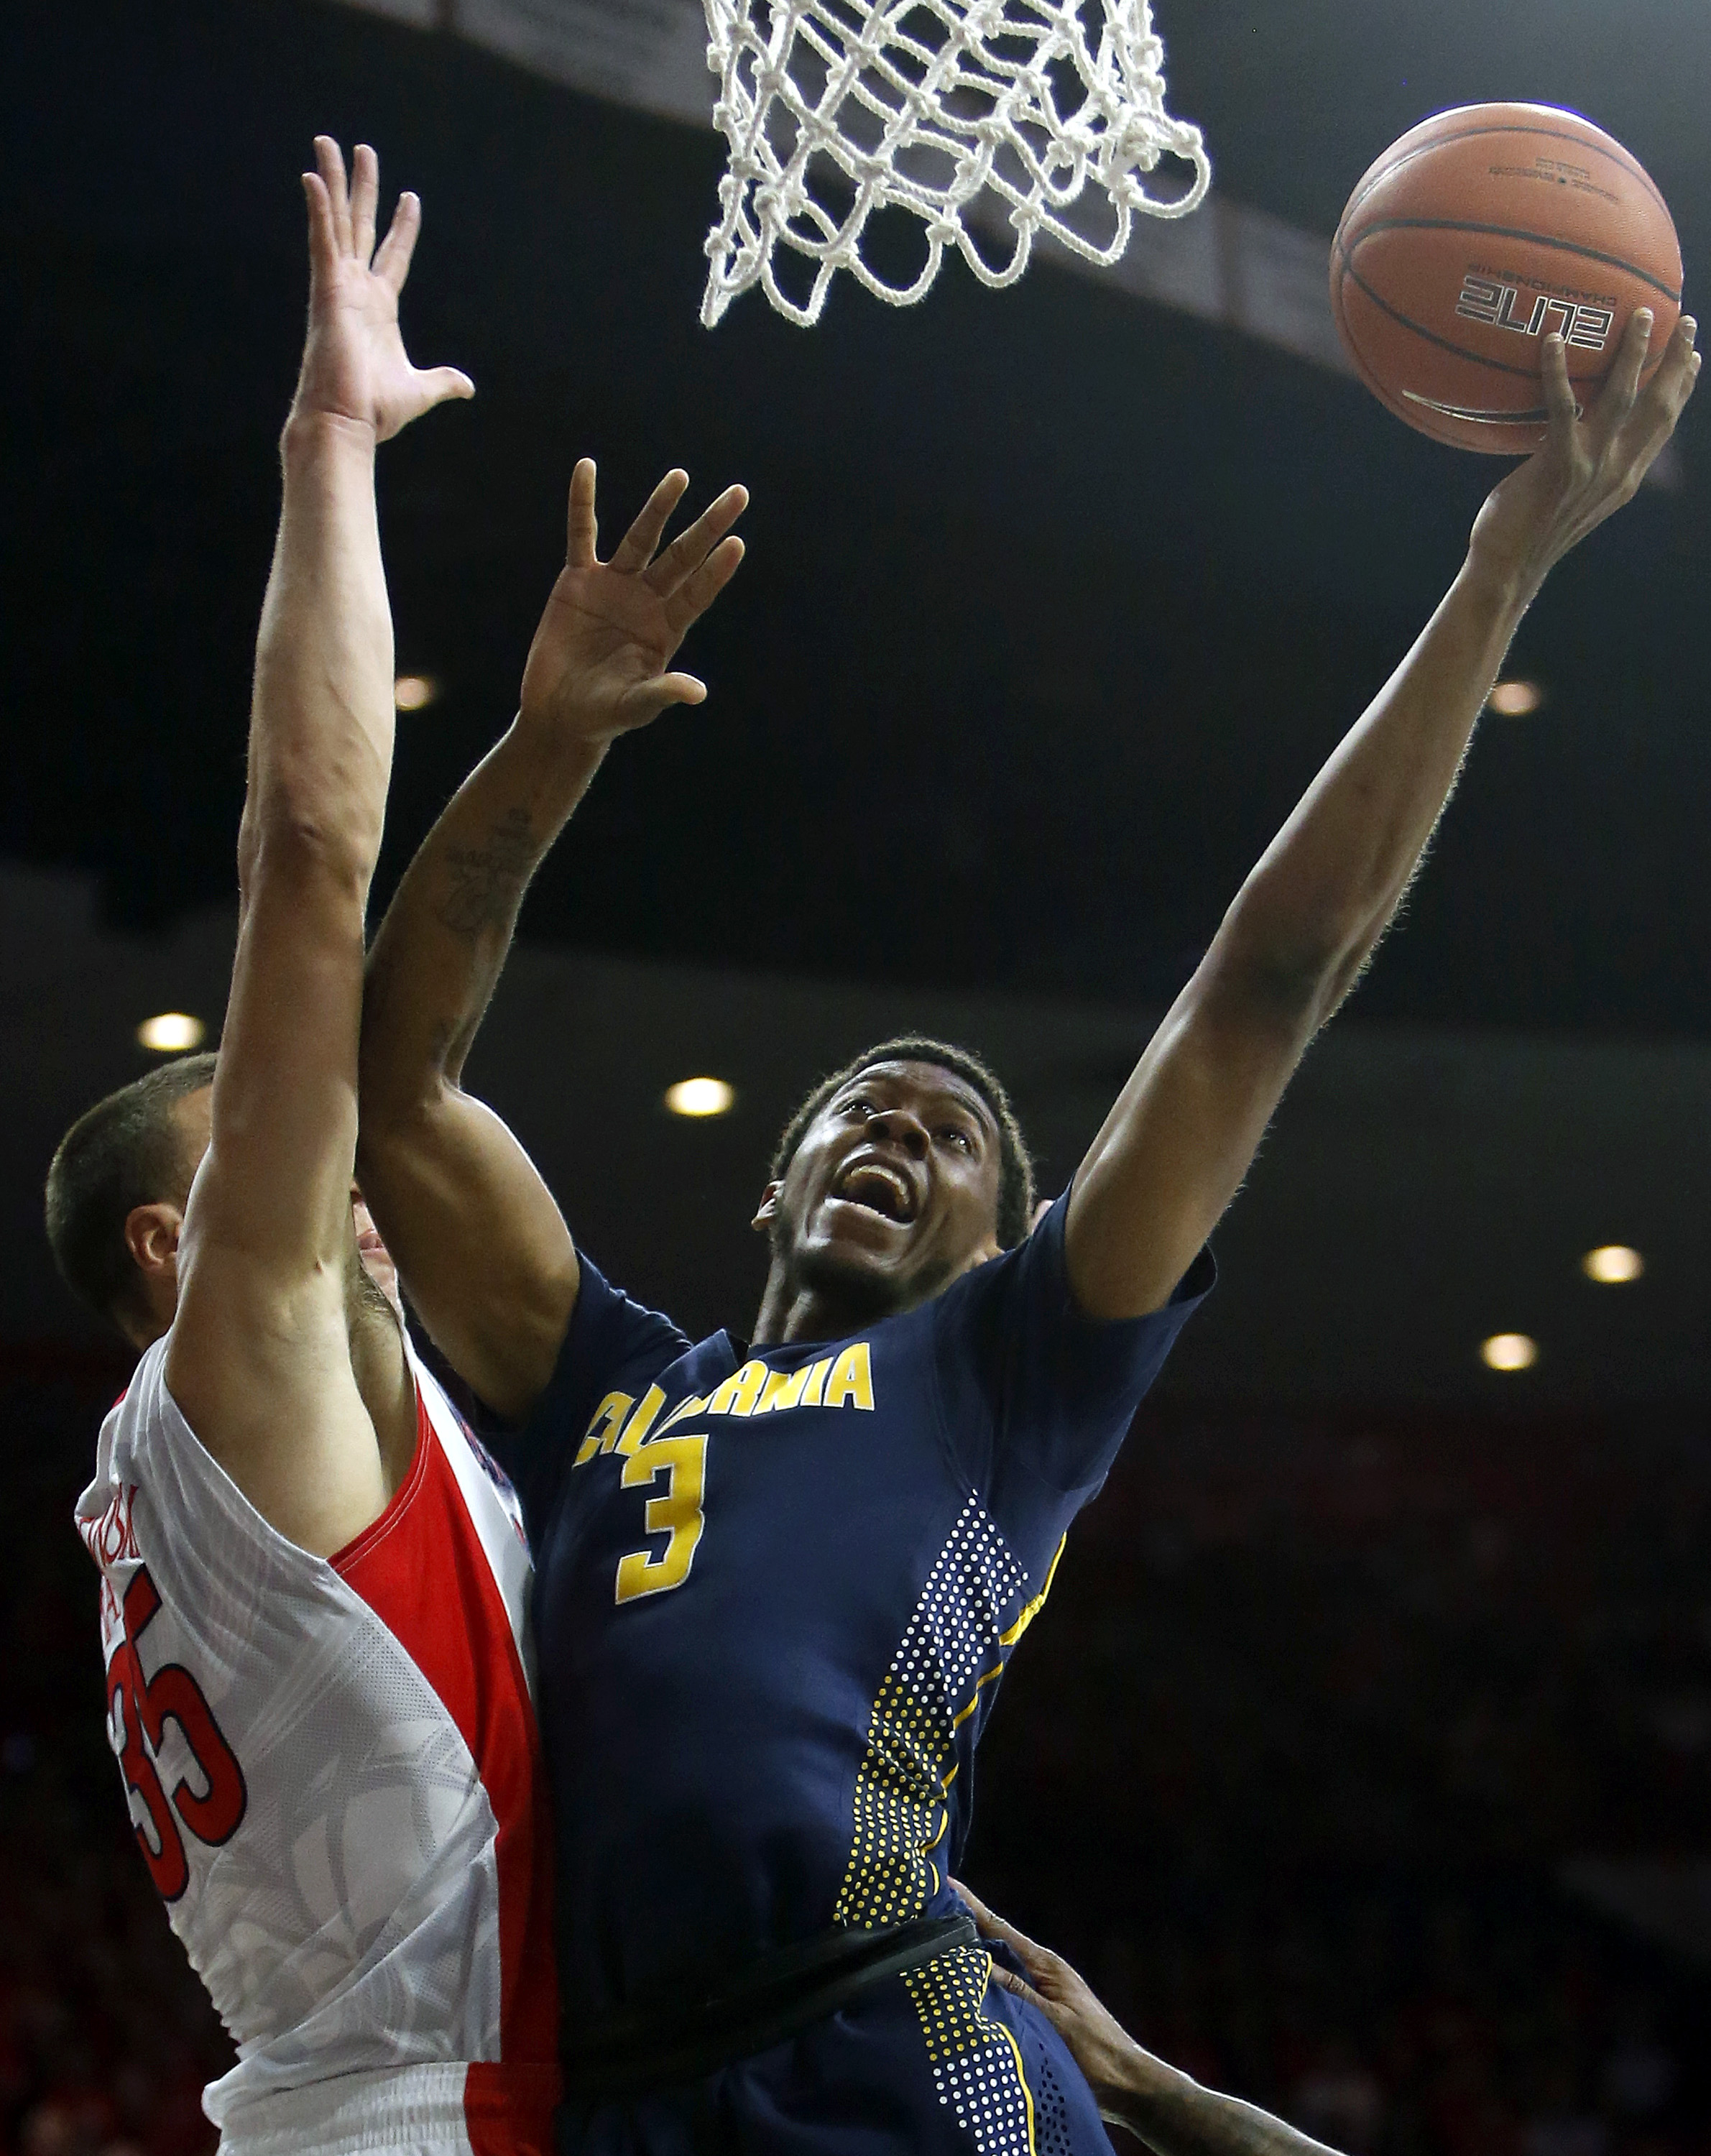 California guard Tyrone Wallace (3) drives against Arizona center Kaleb Tarczewski during the first half of an NCAA college basketball game, Thursday, March 3, 2016, in Tucson, Ariz. (AP Photo/Rick Scuteri)